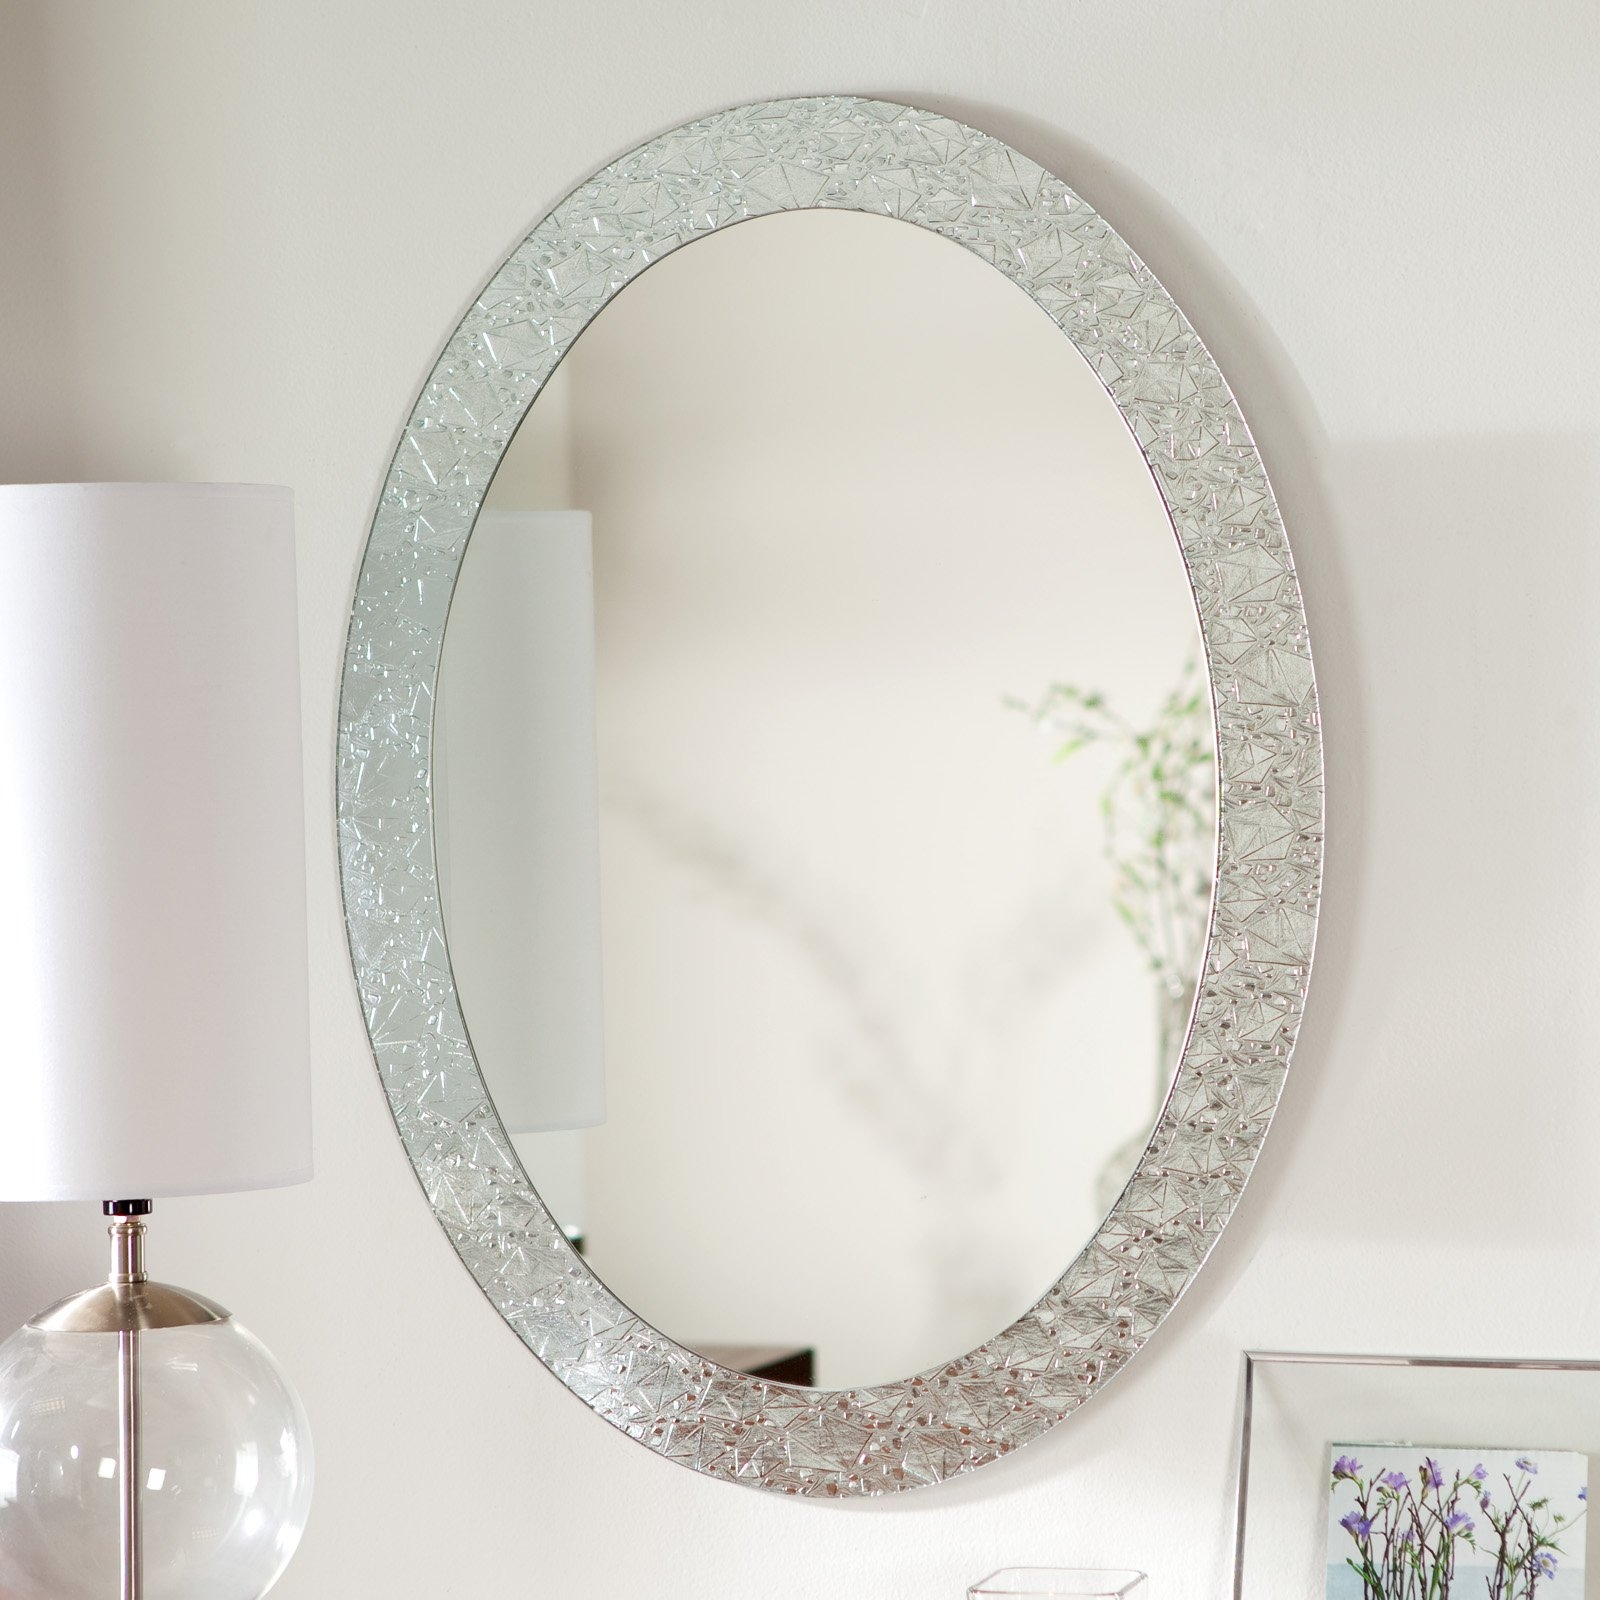 Oval Mirrors For Bathroom Walls Creative Bathroom Decoration Inside Oval Mirrors For Walls (Image 8 of 15)